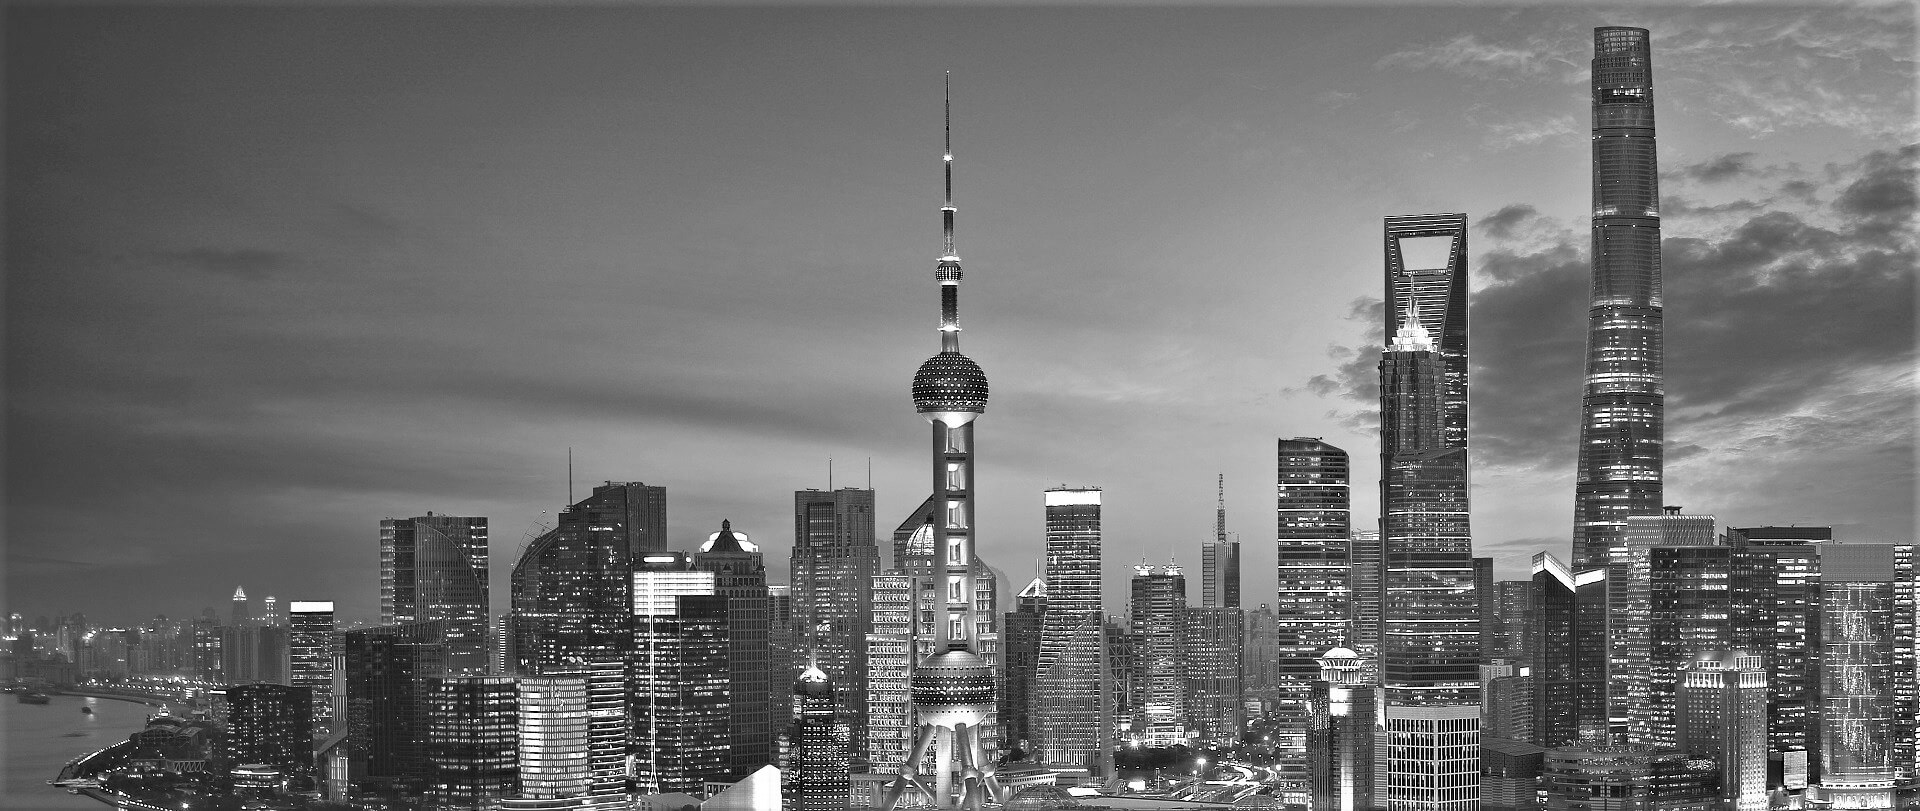 Skyline View of Pudong District in Shanghai